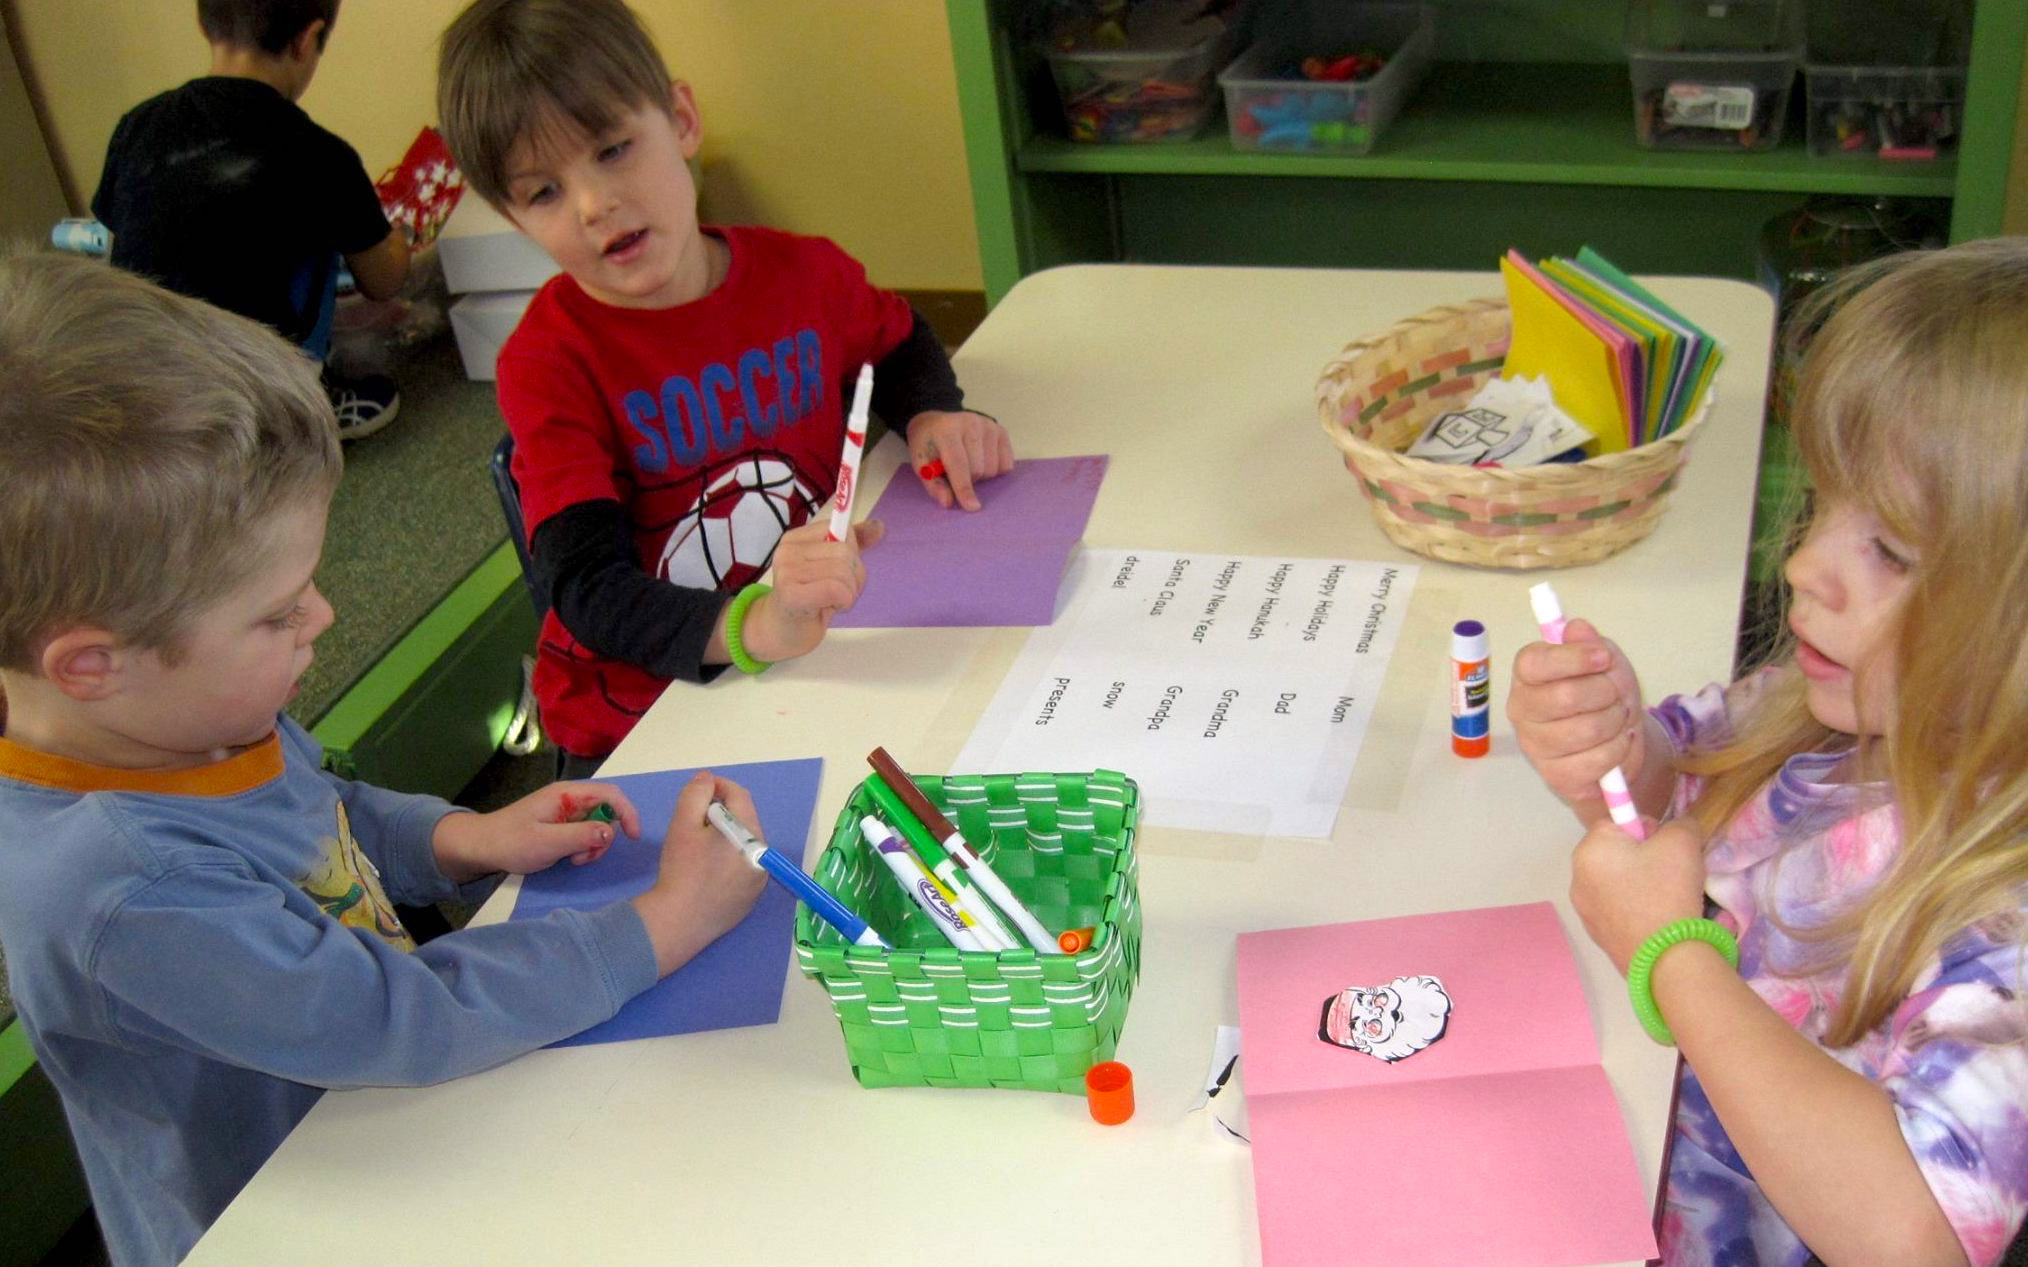 Two preschoolers at Discovery Trails Early Learning Academy choosing colorful beads for an art project.